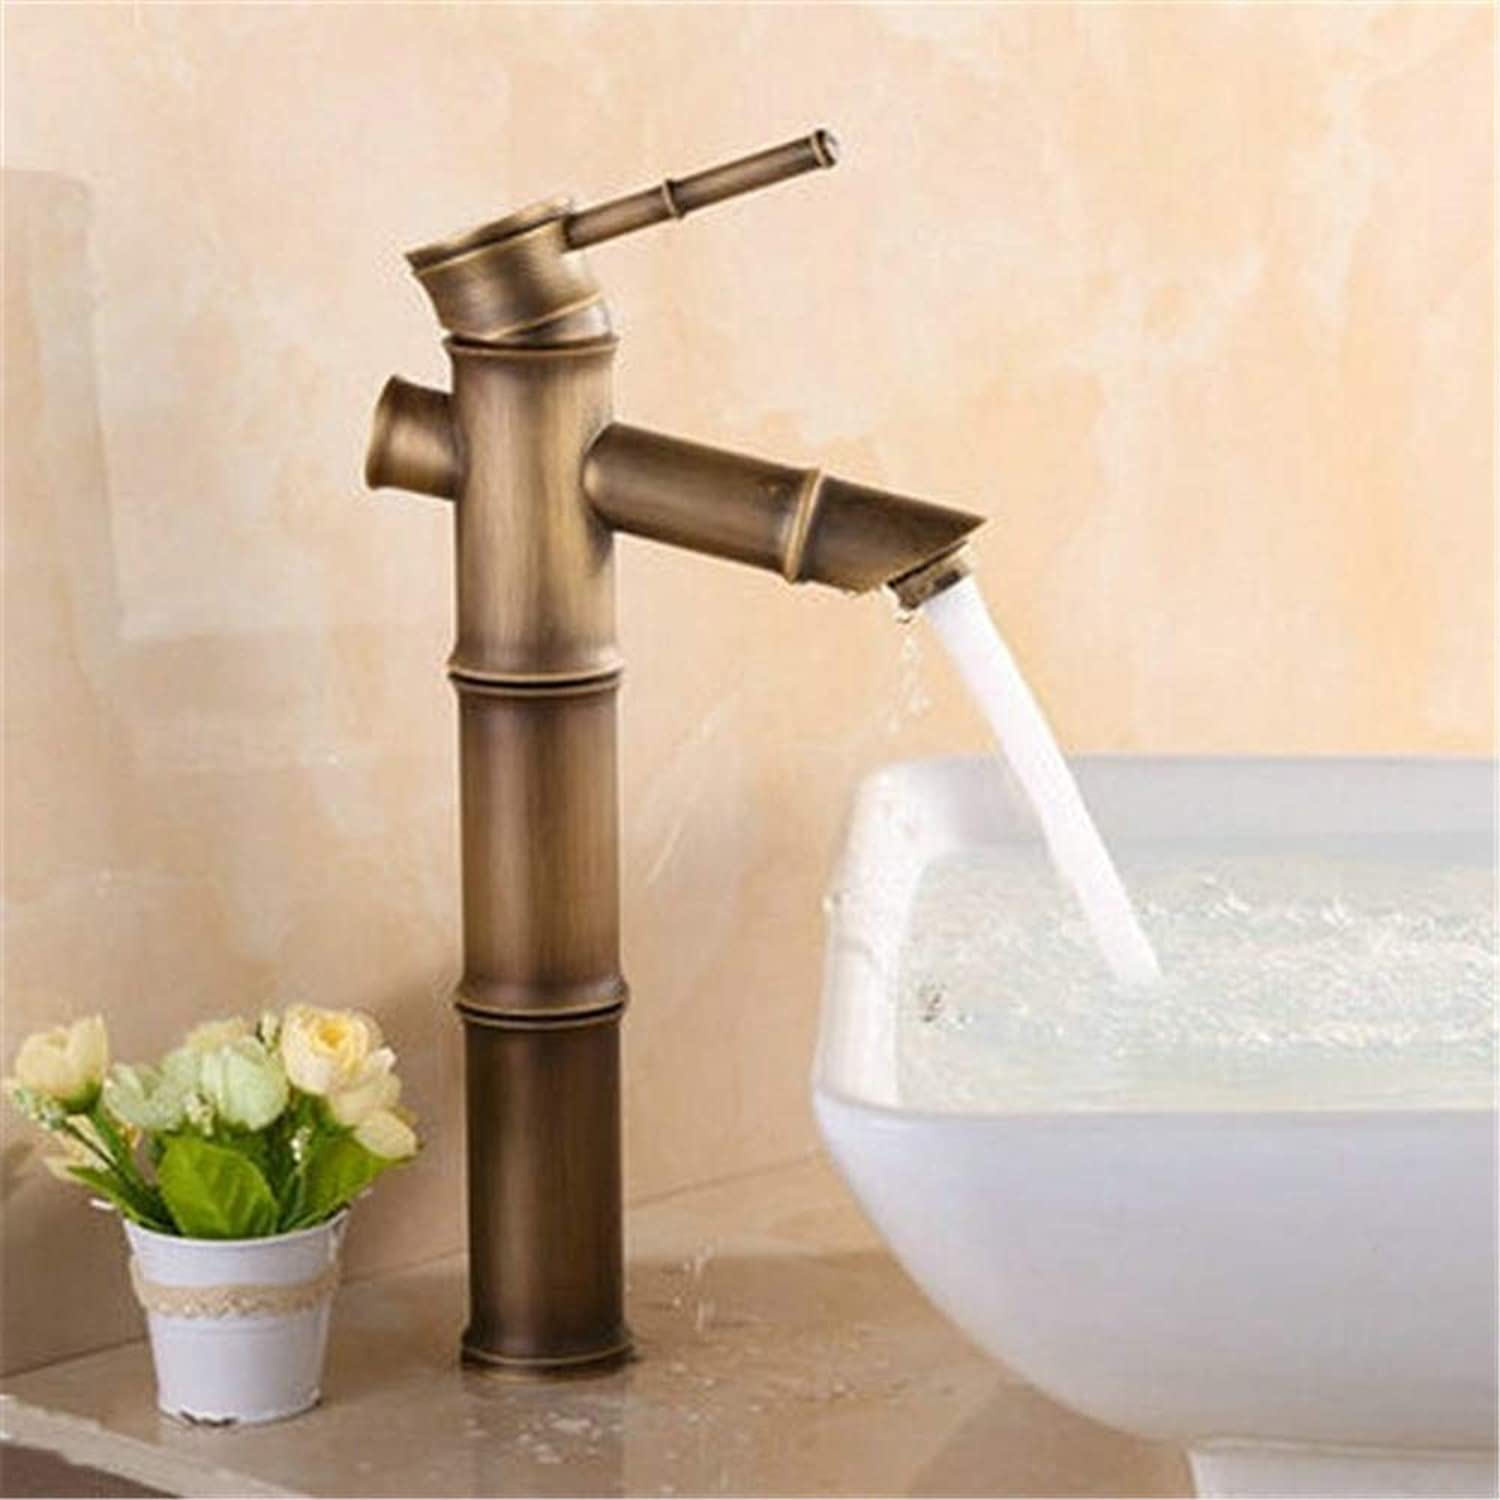 YAWEDA High Bamboo Bathroom Basin Faucets Brass Mixer Tap Antique Faucet Single Handle Hot and Cold Water Mixer Bathroom Sink Faucet